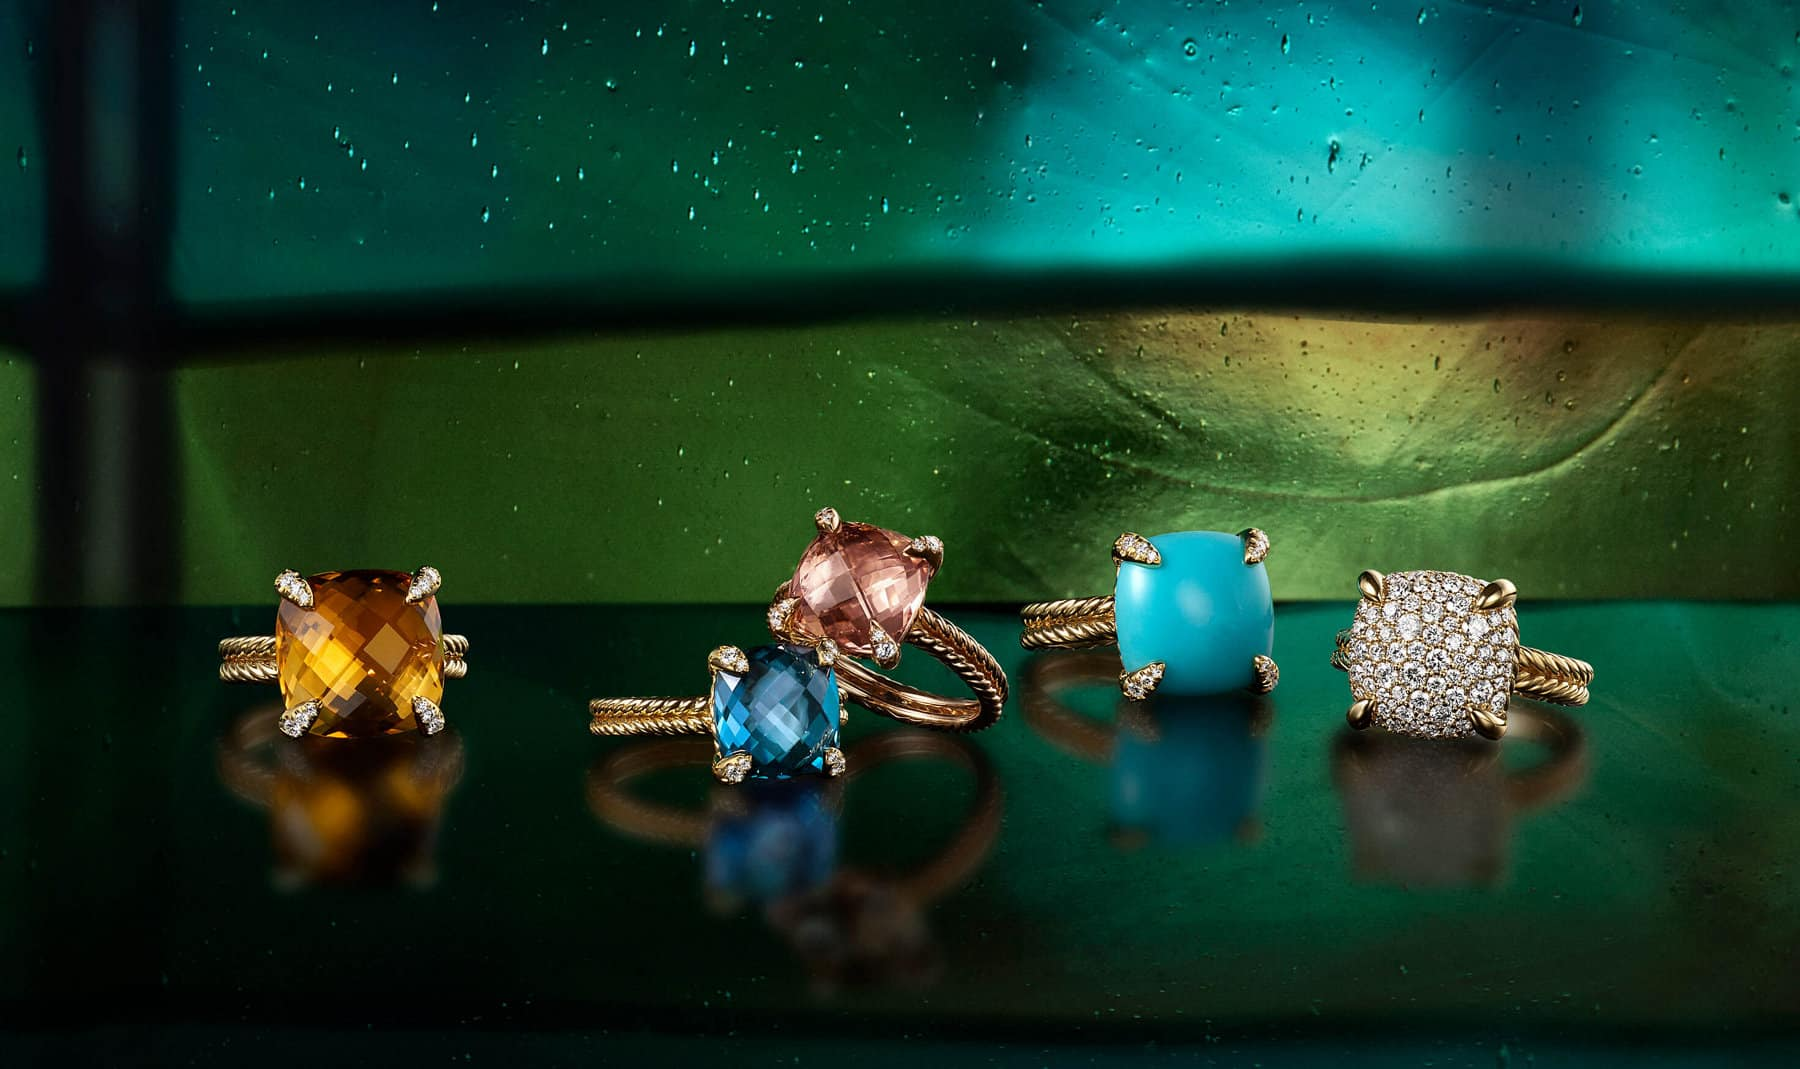 A color photograph shows five David Yurman Châtelaine rings scattered on a black reflective surface with a colorful stained glass panel behind them. The women's rings are crafted from 18K yellow gold or 18K rose gold with pavé diamonds and cushion-shaped citrine, blue topaz, morganite or turquoise